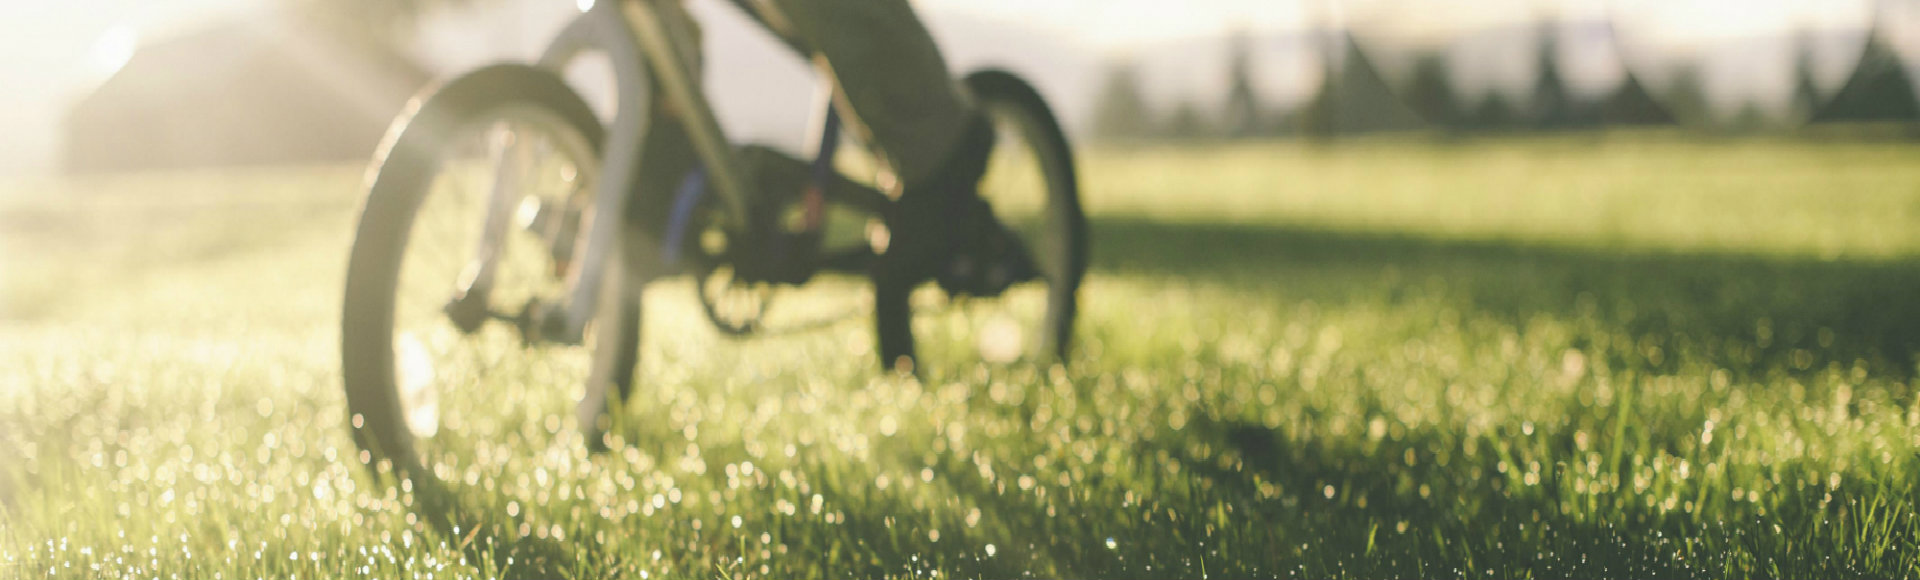 residential bike on grass 1920x580